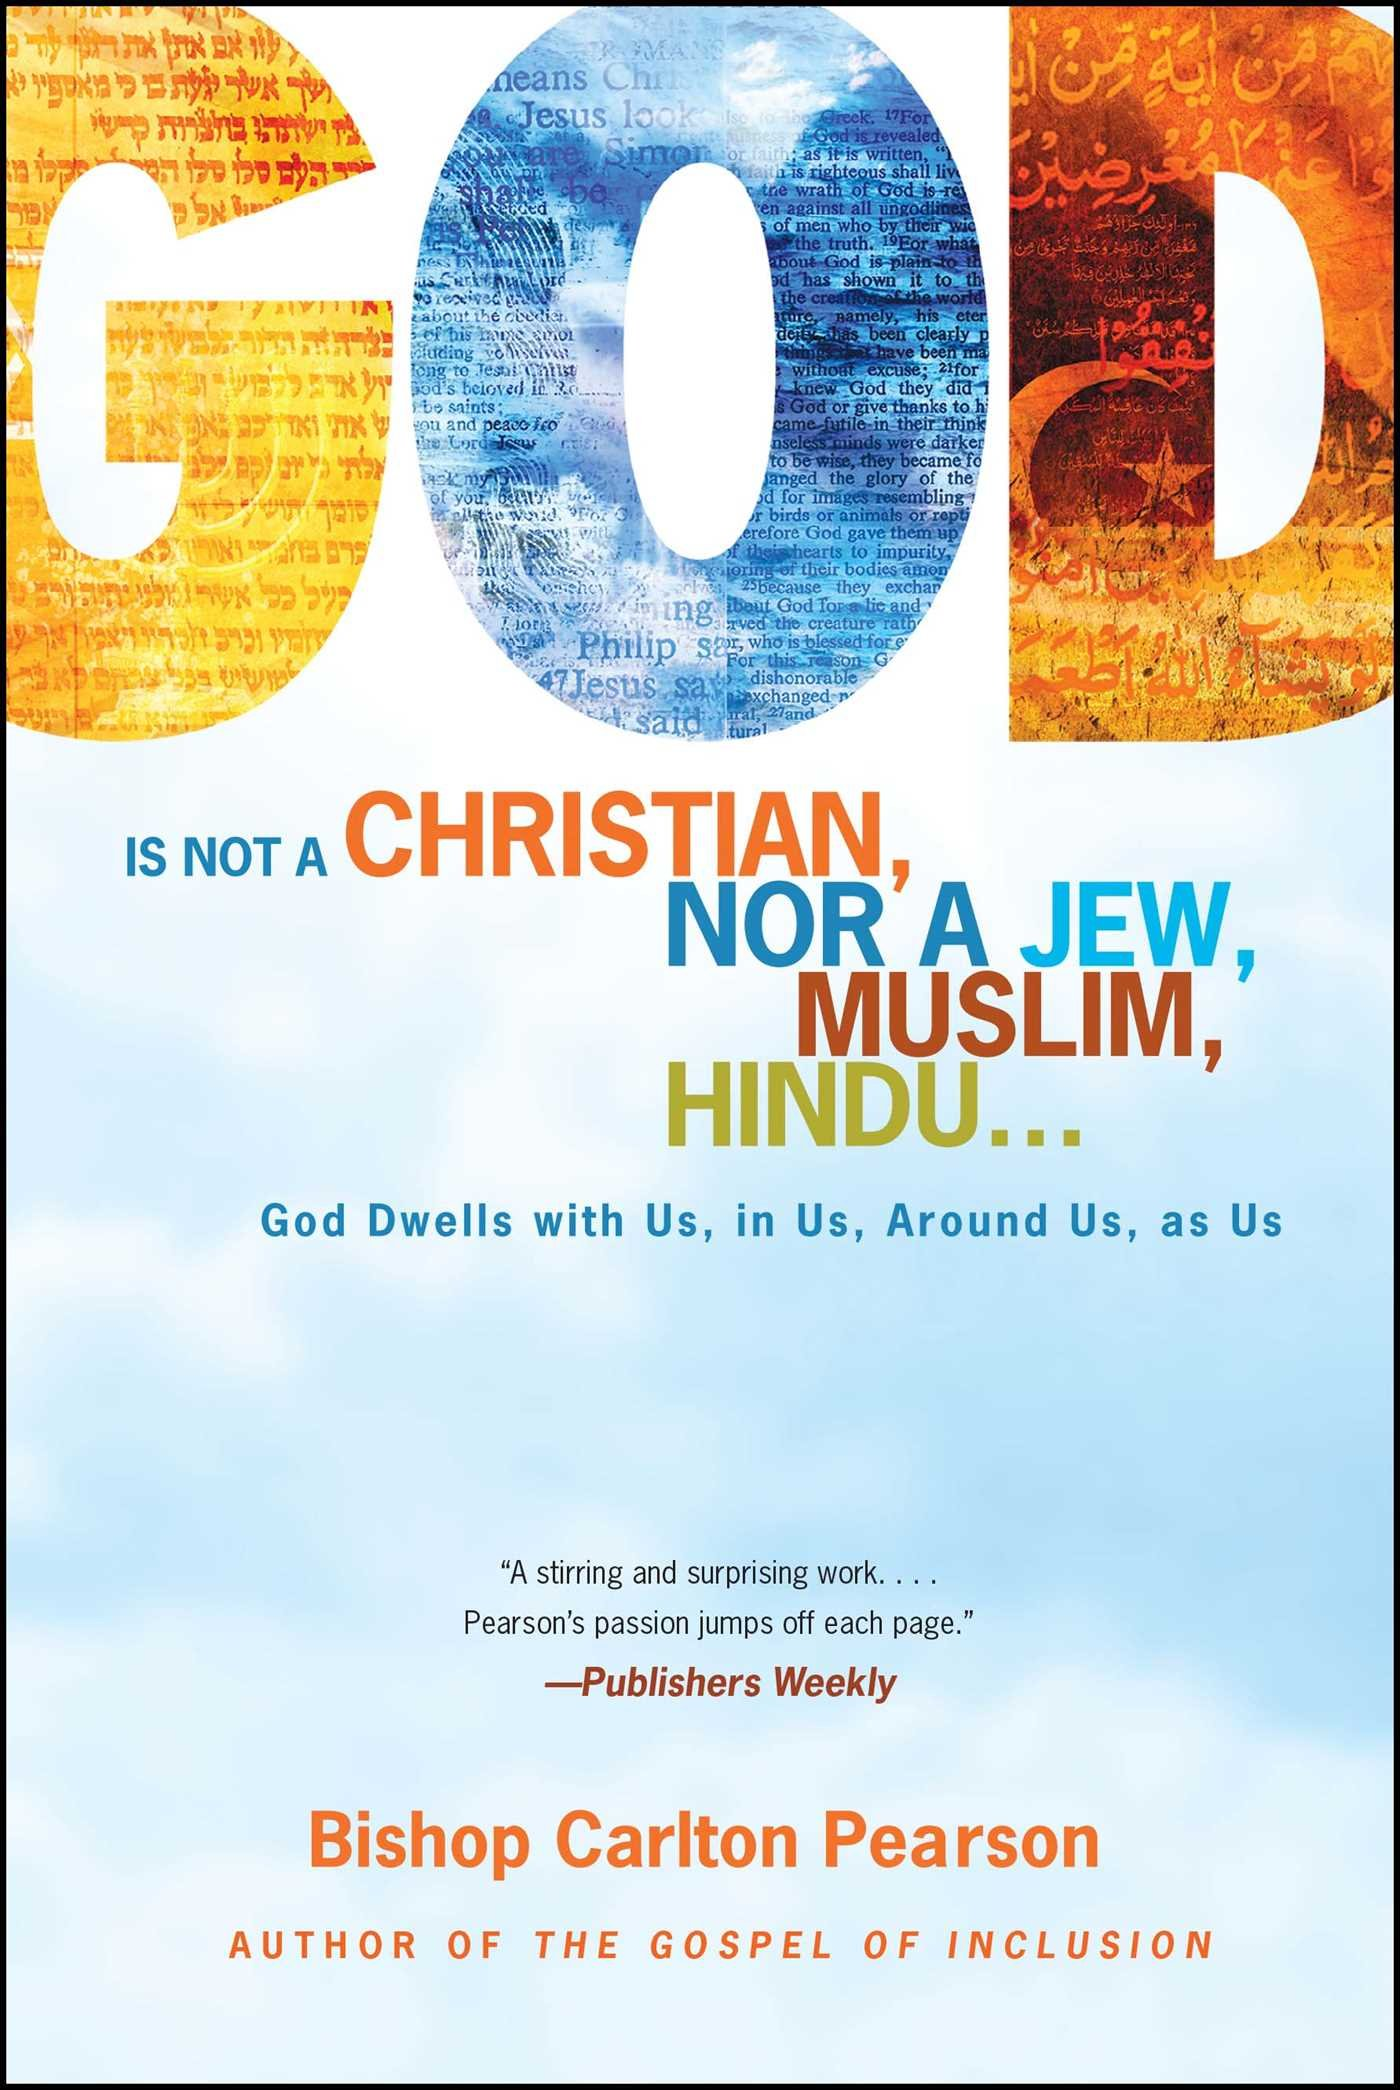 God Is Not a Christian Nor a Jew Muslim Hindu God Dwells with